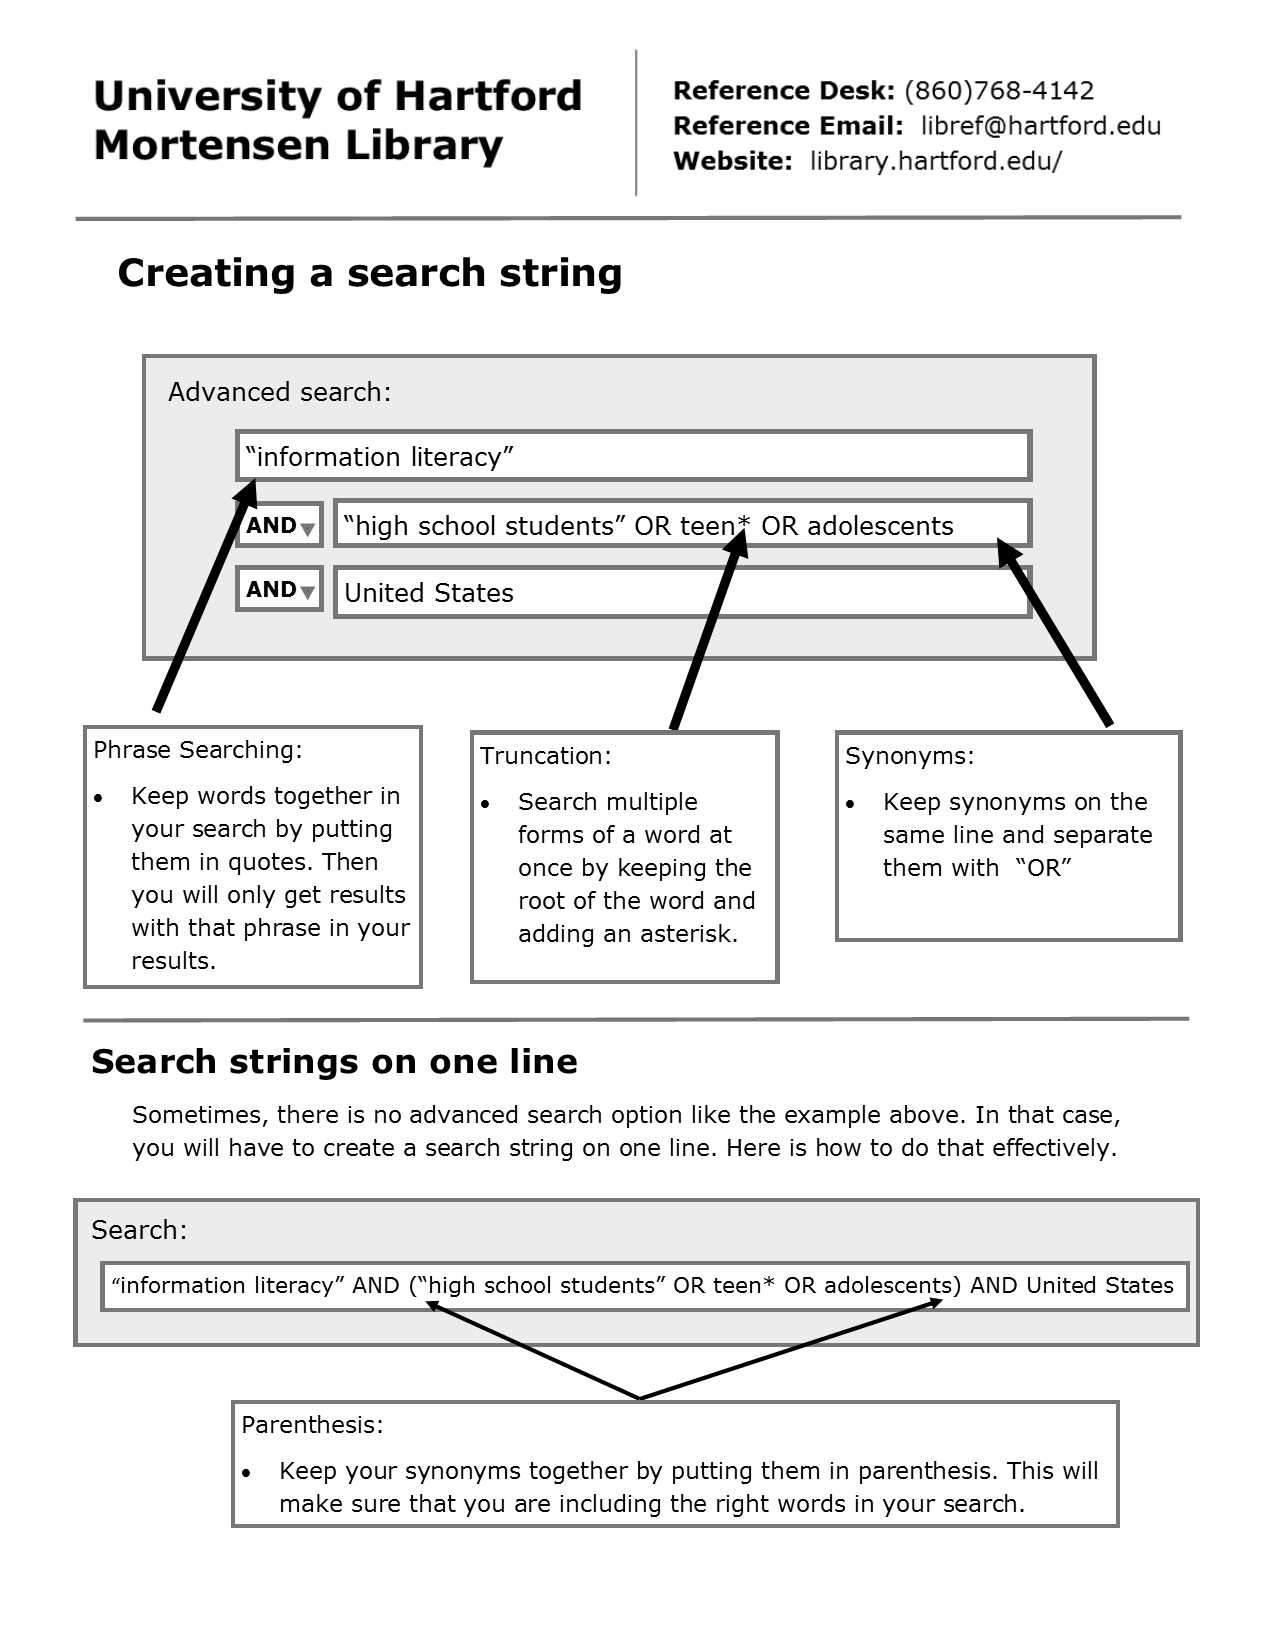 Creating a search string